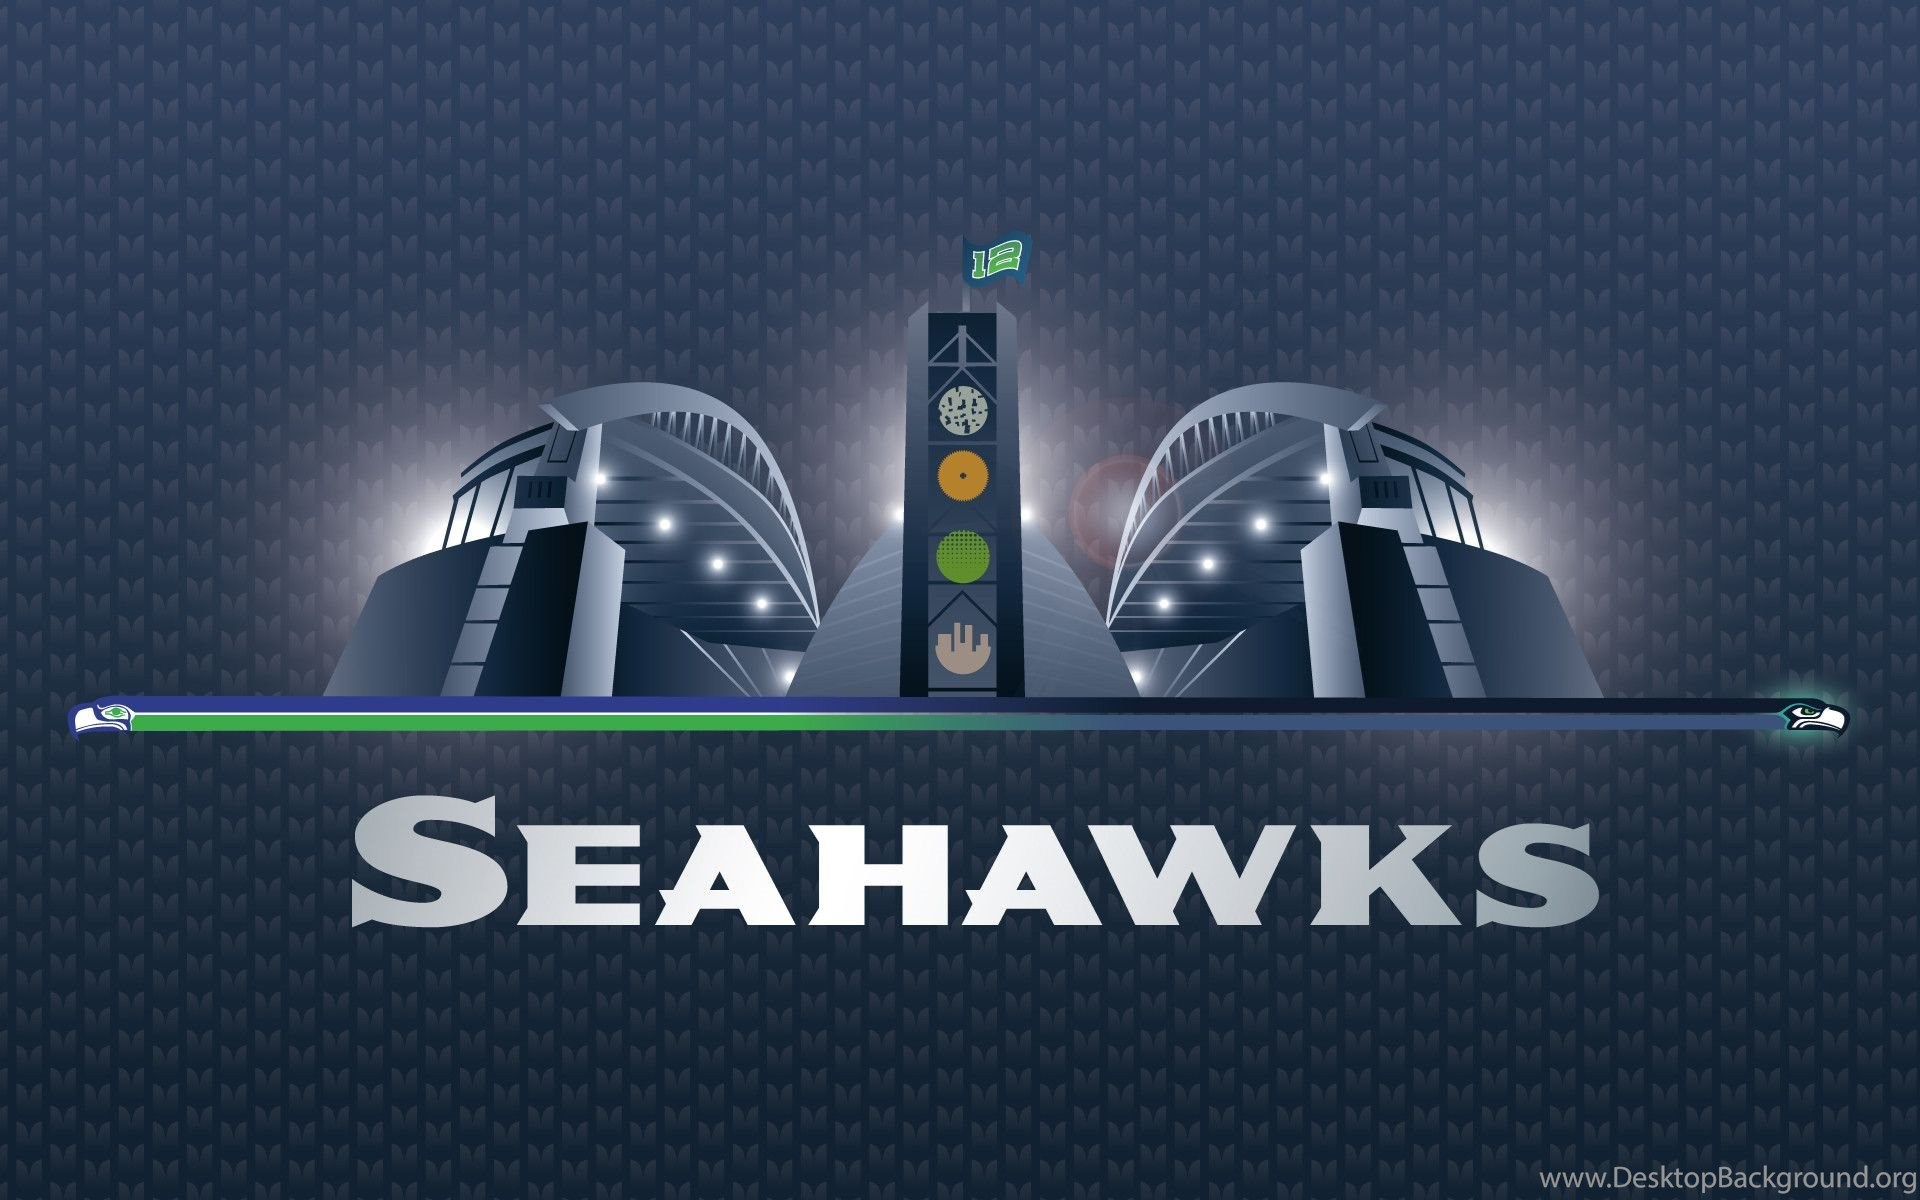 1920x1200 Seahawks Wallpapers Seahawks Desktop Background